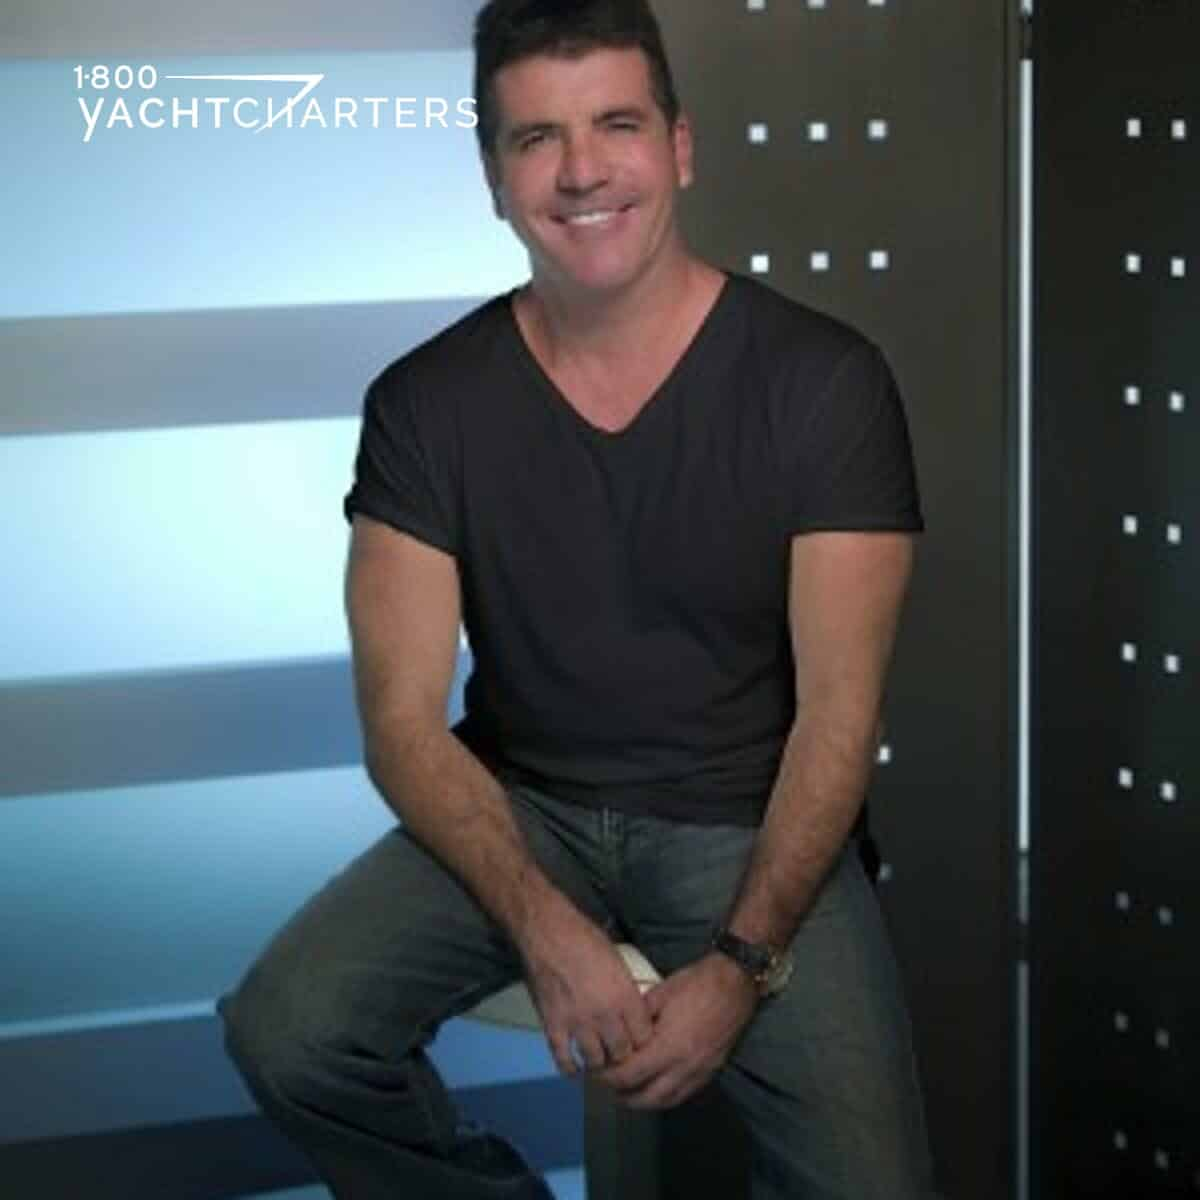 Photograph of Simon Cowell smiling in front of a grey wall with horizontal lighting.  He is wearing a black t-shirt and blue jeans.  He is sitting on a stool.